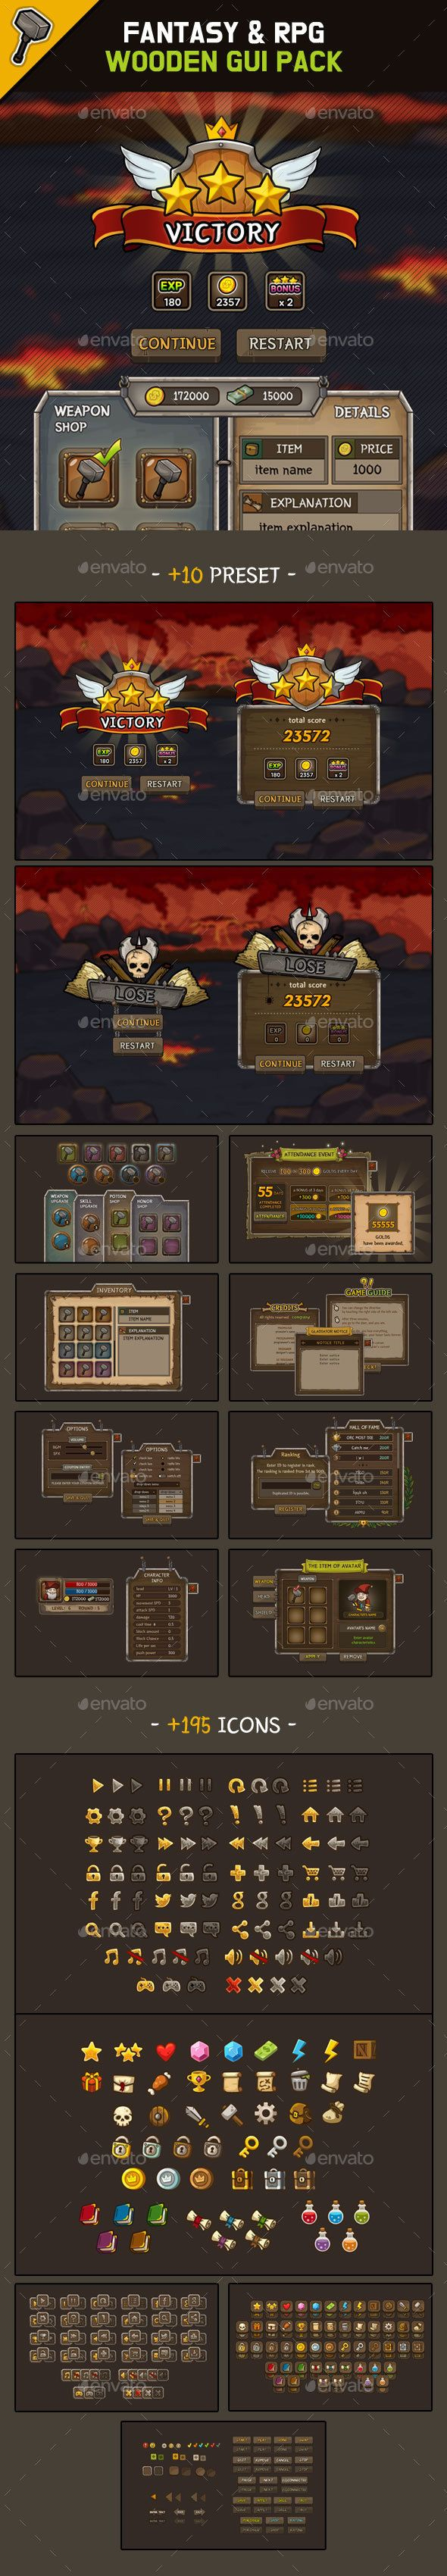 Fantasy Wooden GUI : Package #Wooden, #Fantasy, #Package